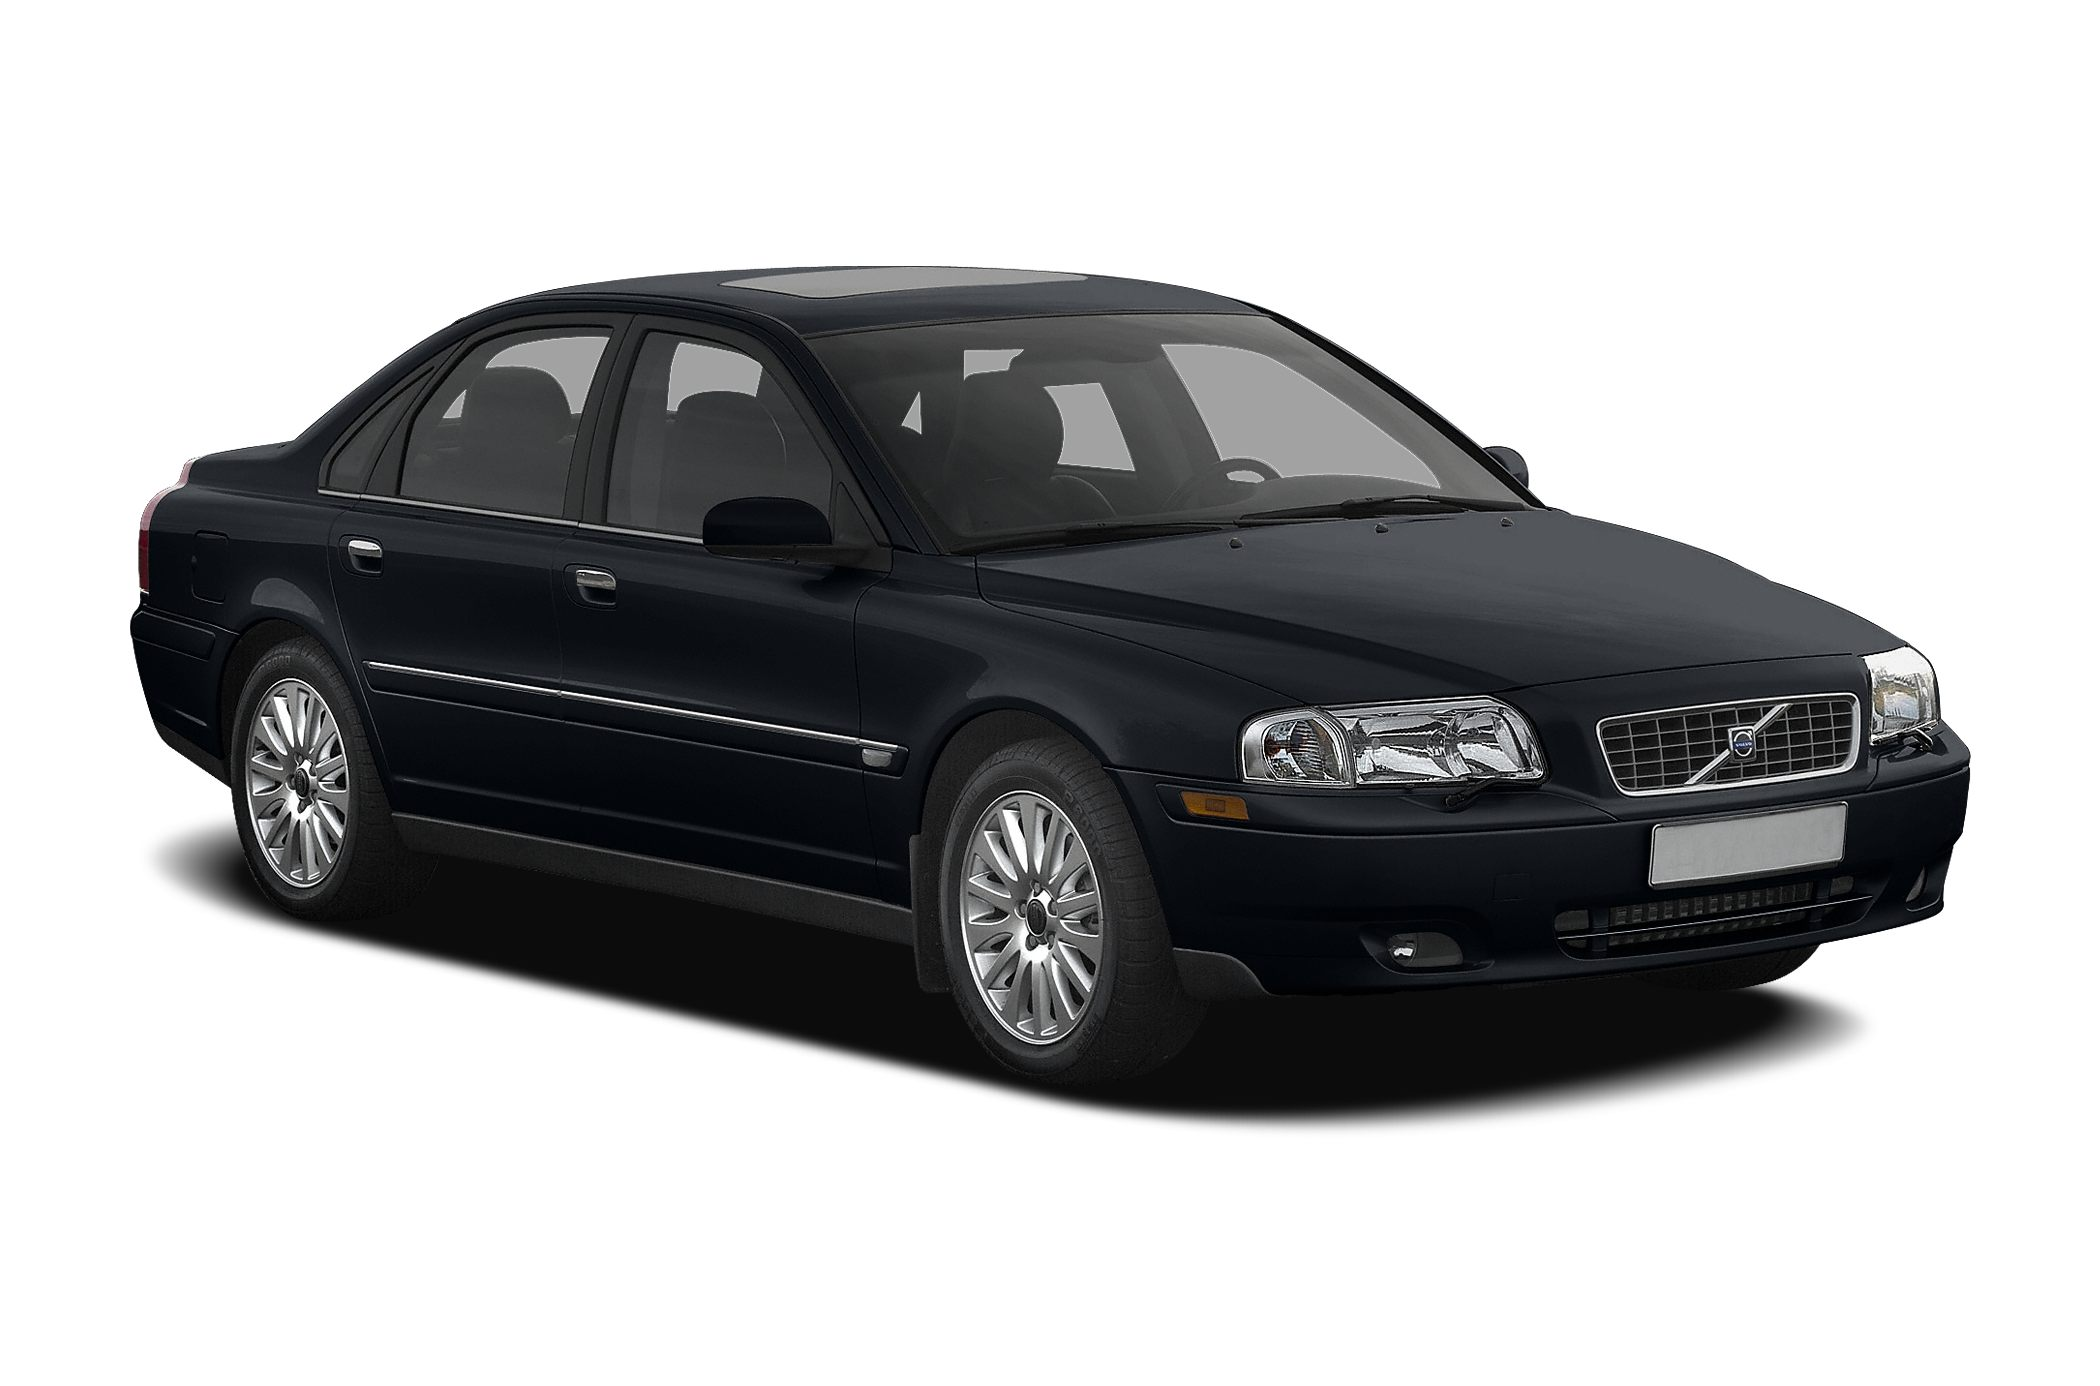 2002 volvo s80 t6 twin turbo specs